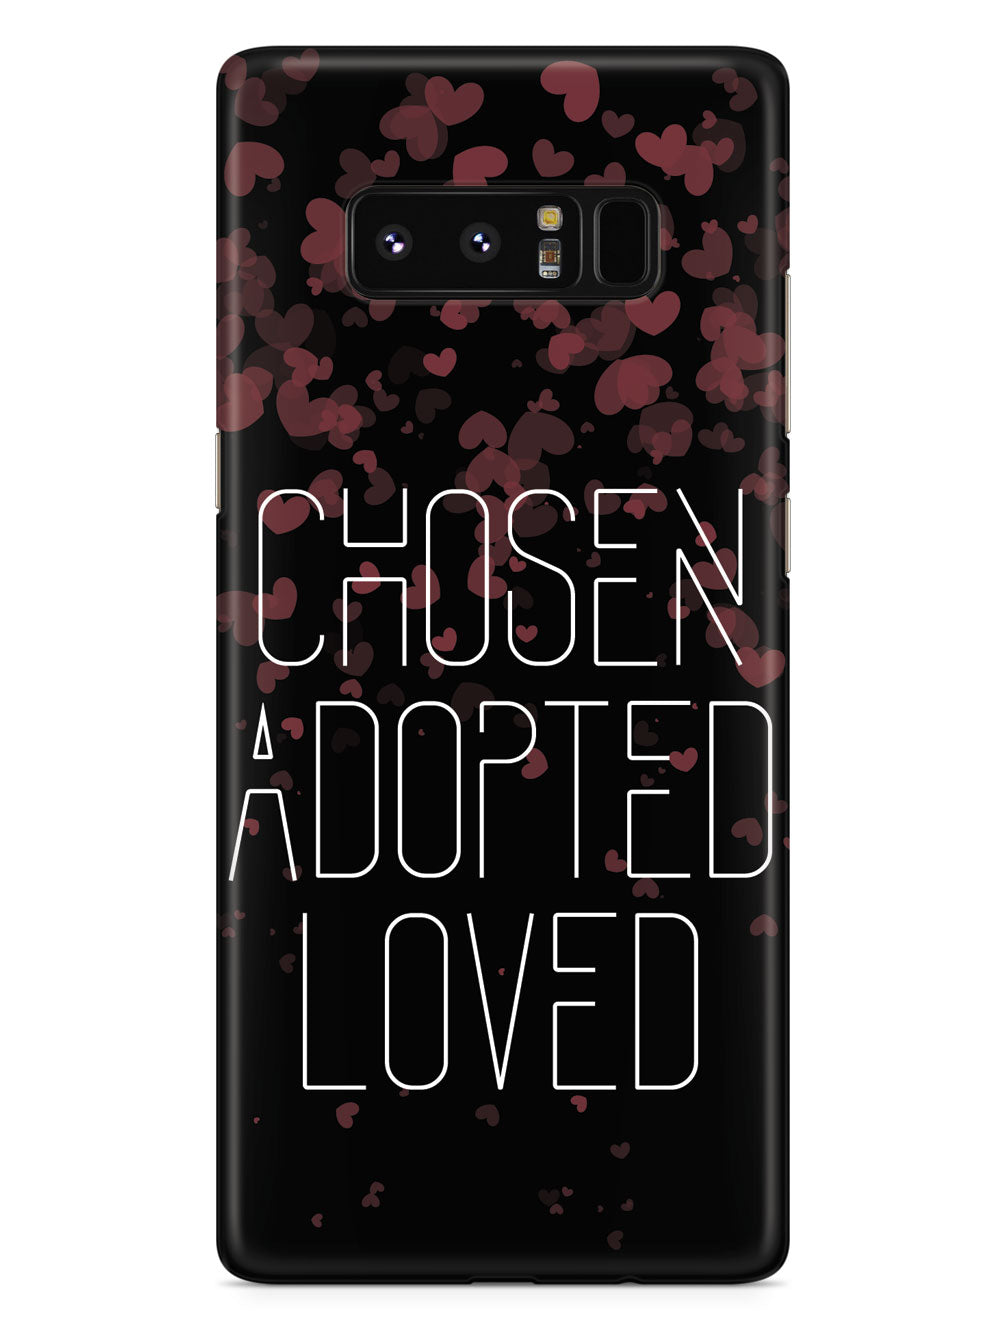 Chosen, Adopted, Loved - Black Case